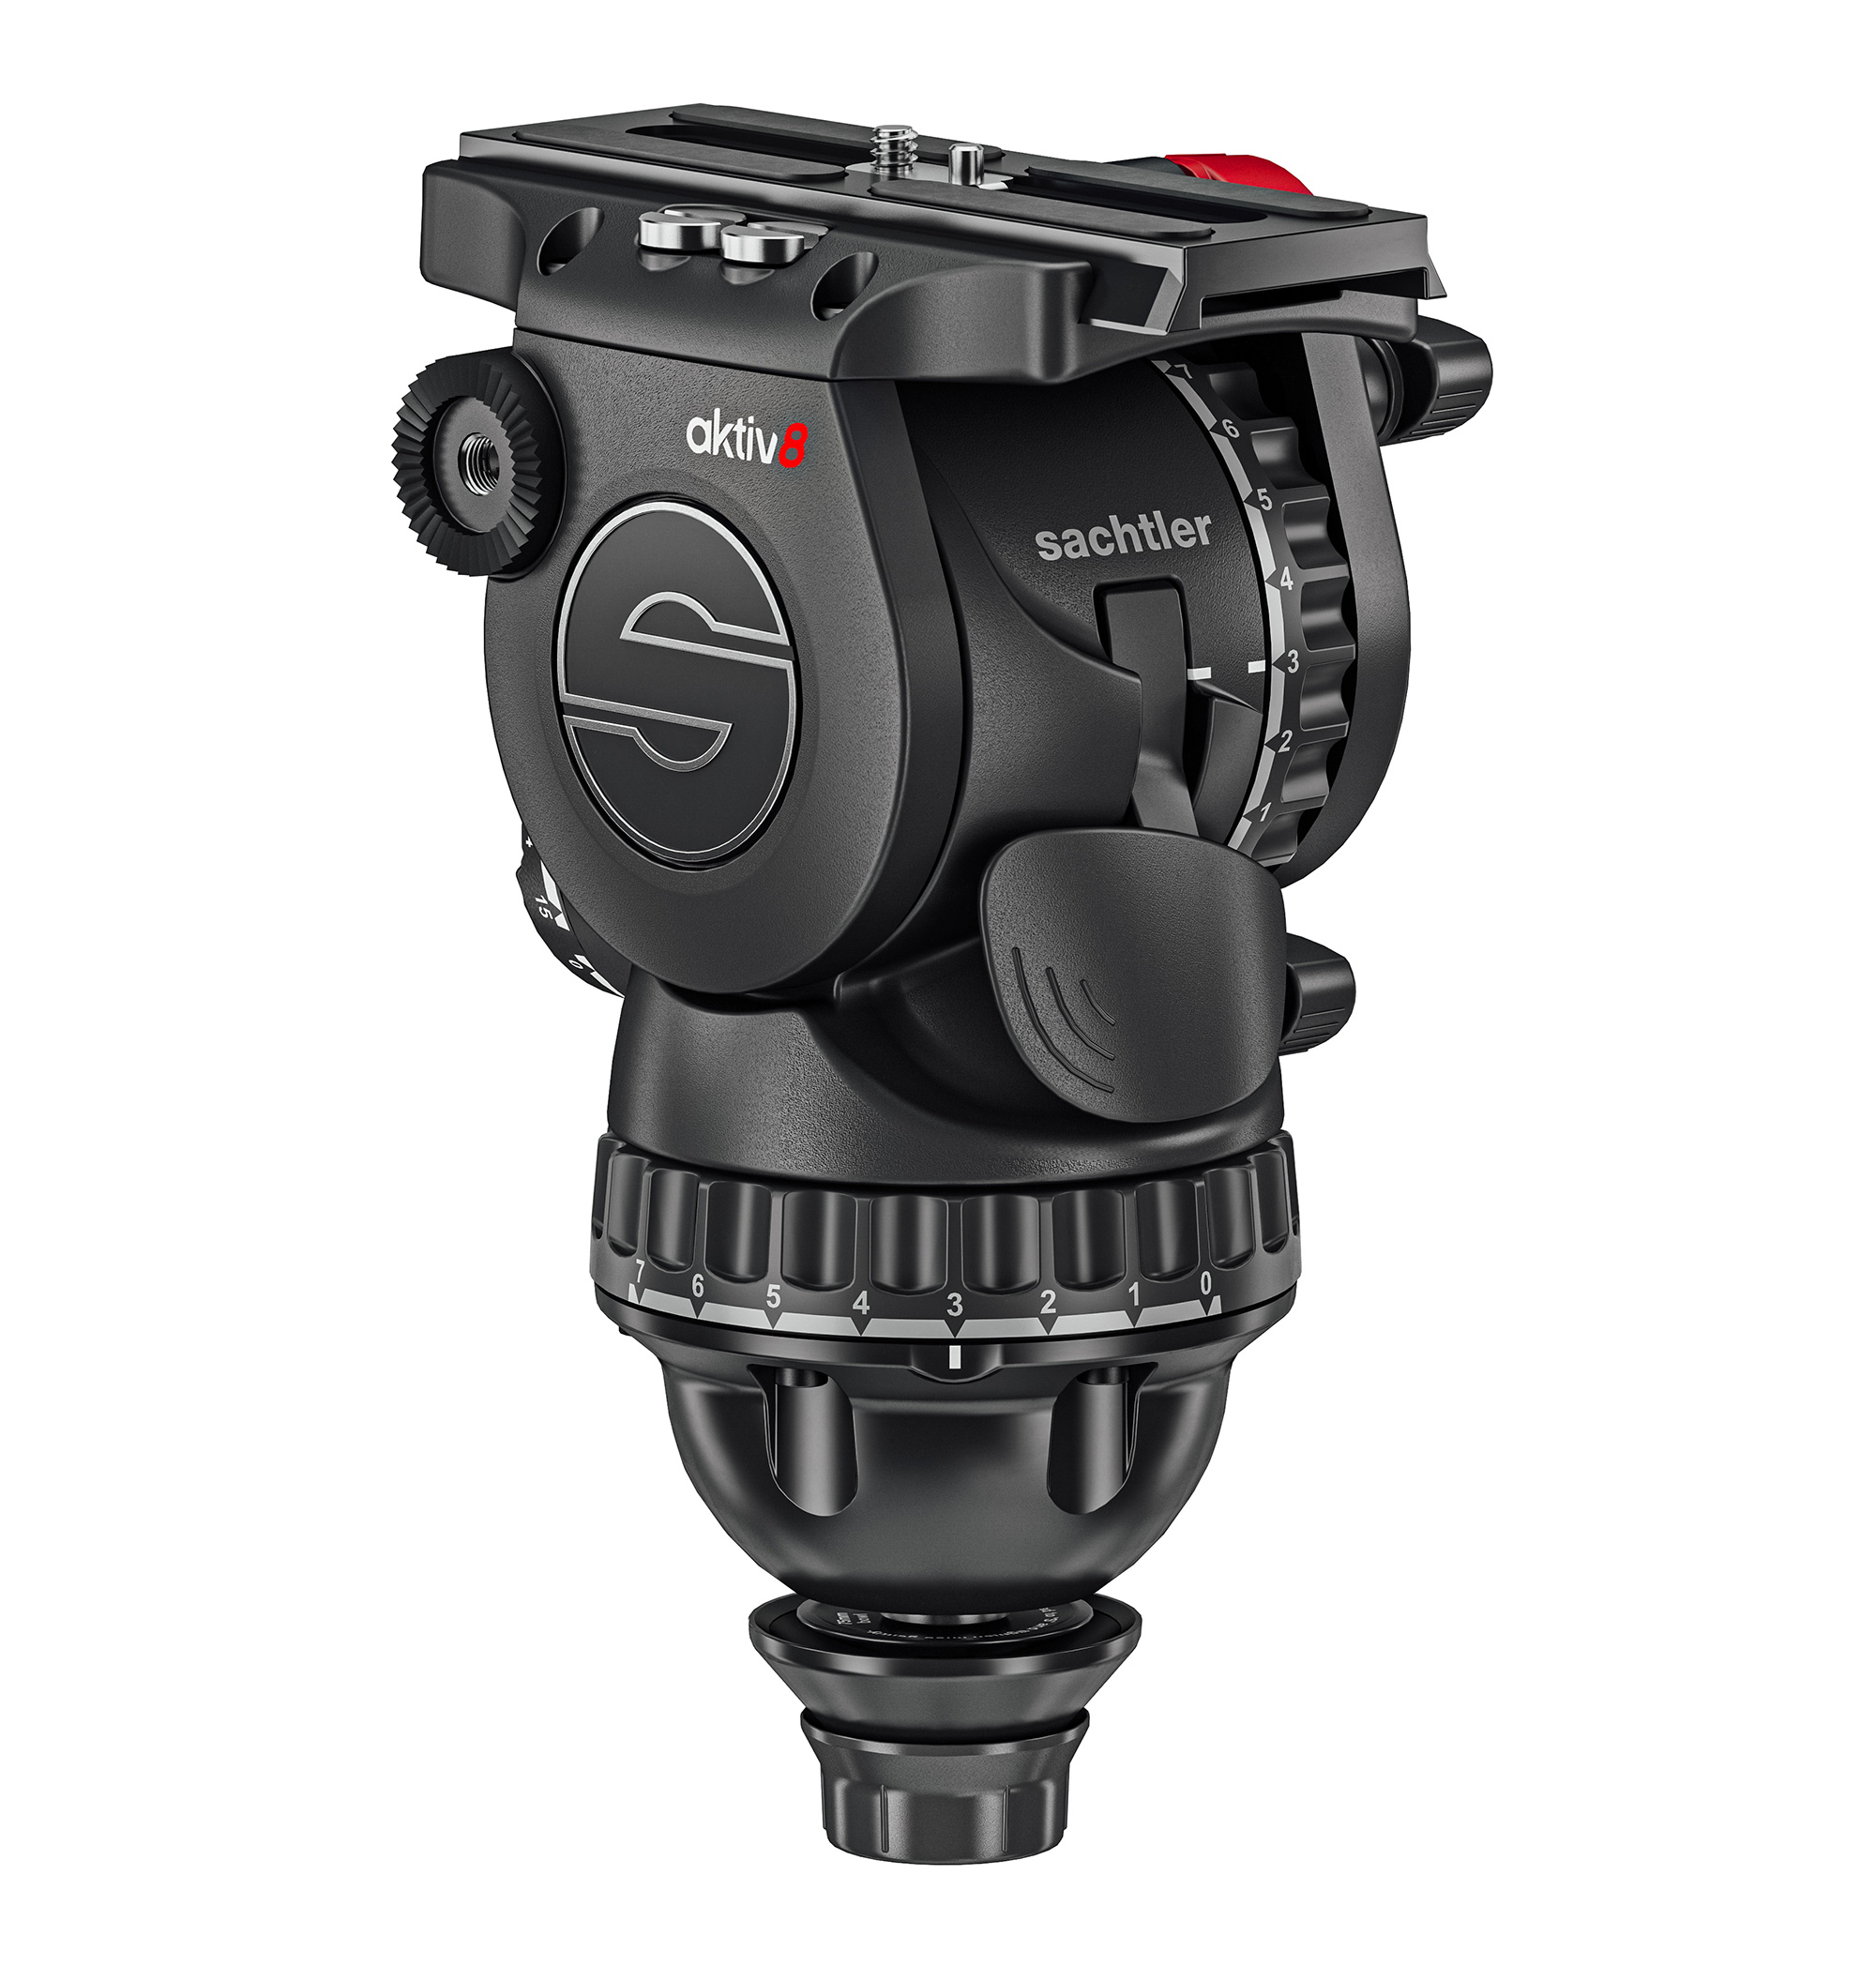 Sachtler presents the fastest fluid head system with the aktiv tripod head series